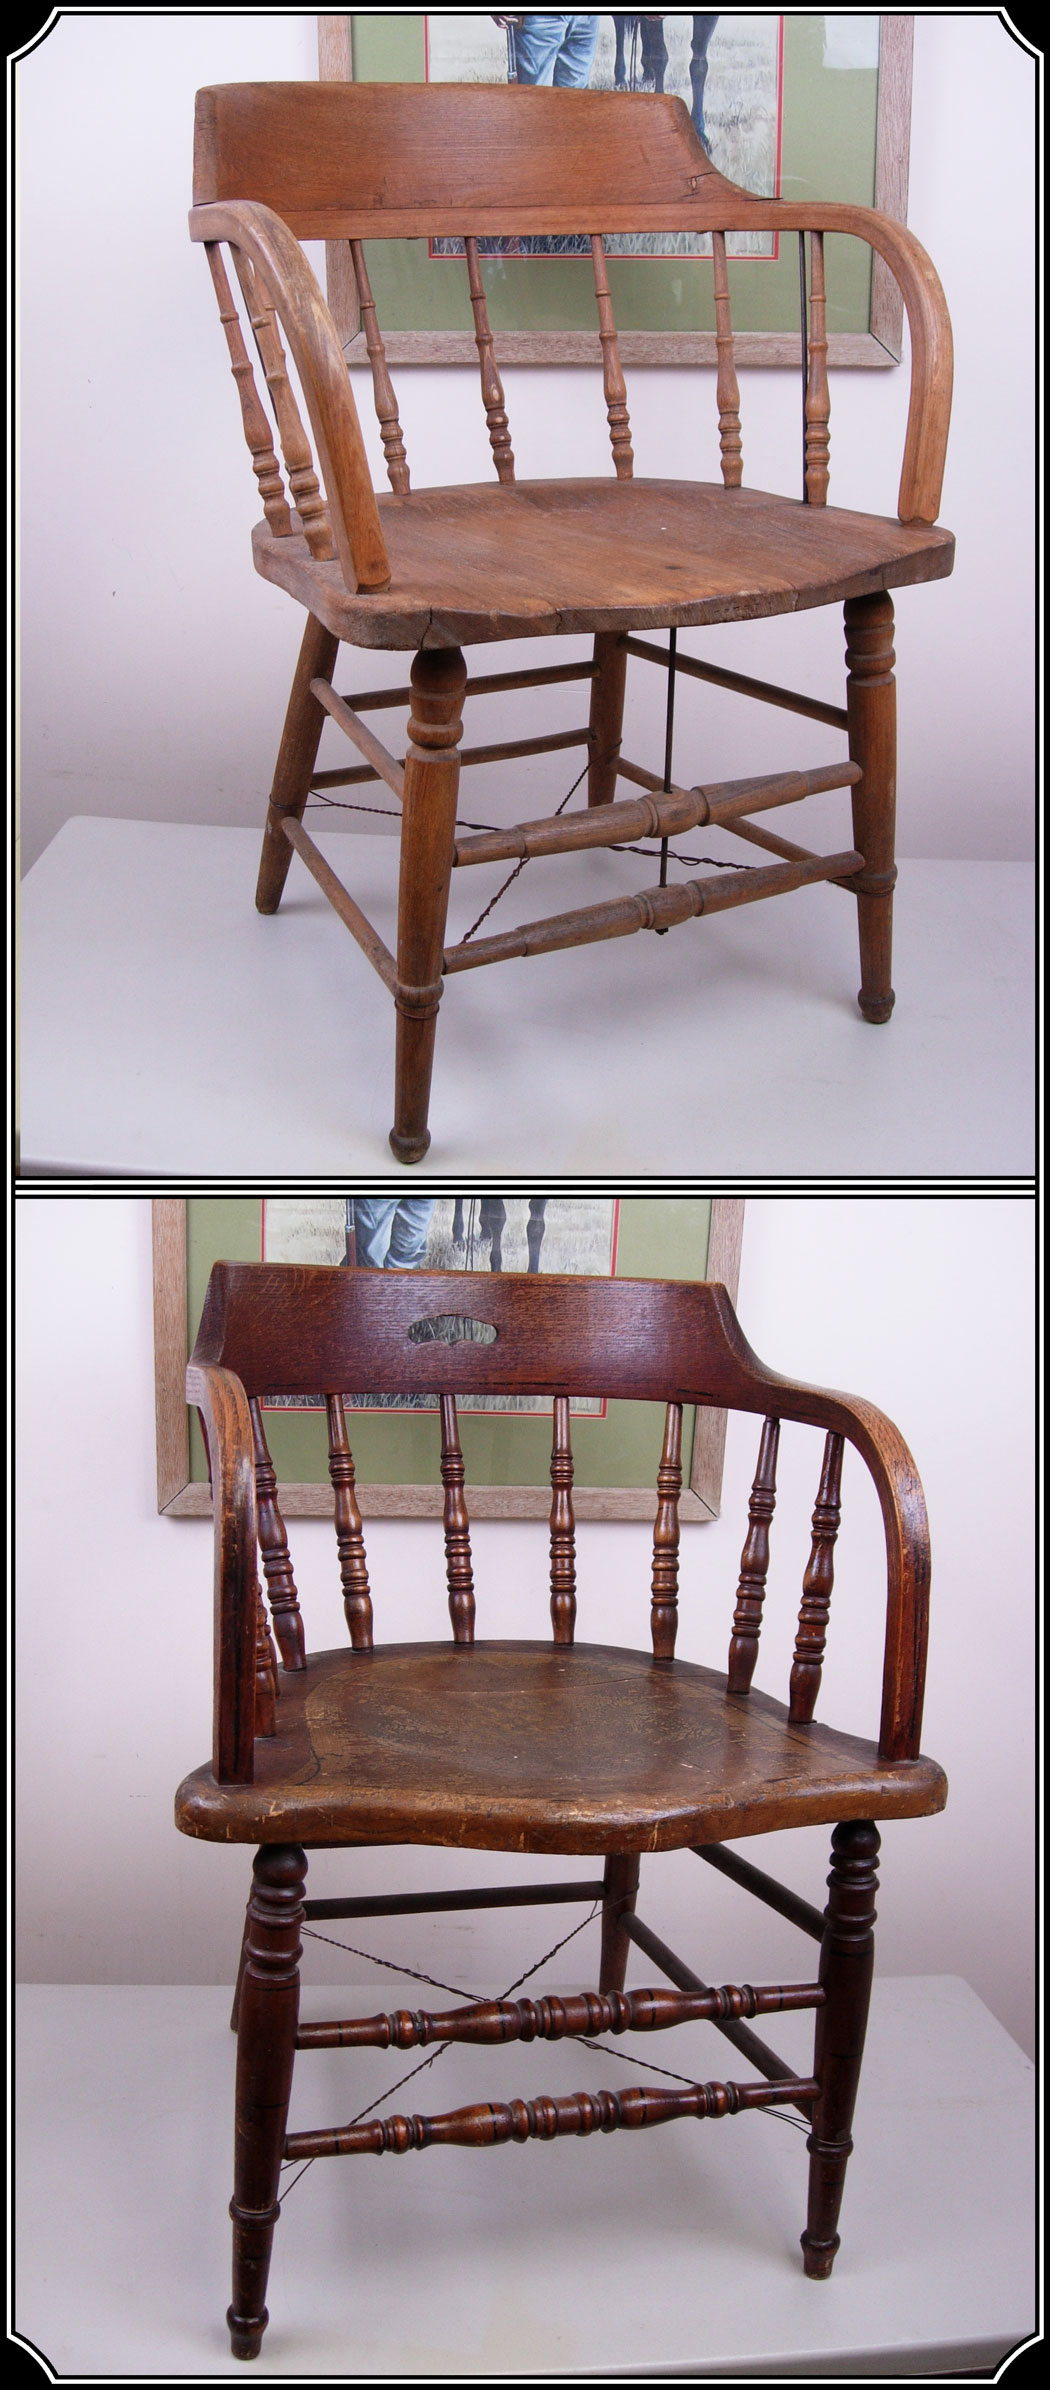 Antique captains chairs - Saloon Chair Captains Chair Caboose Chair Click To Enlarge